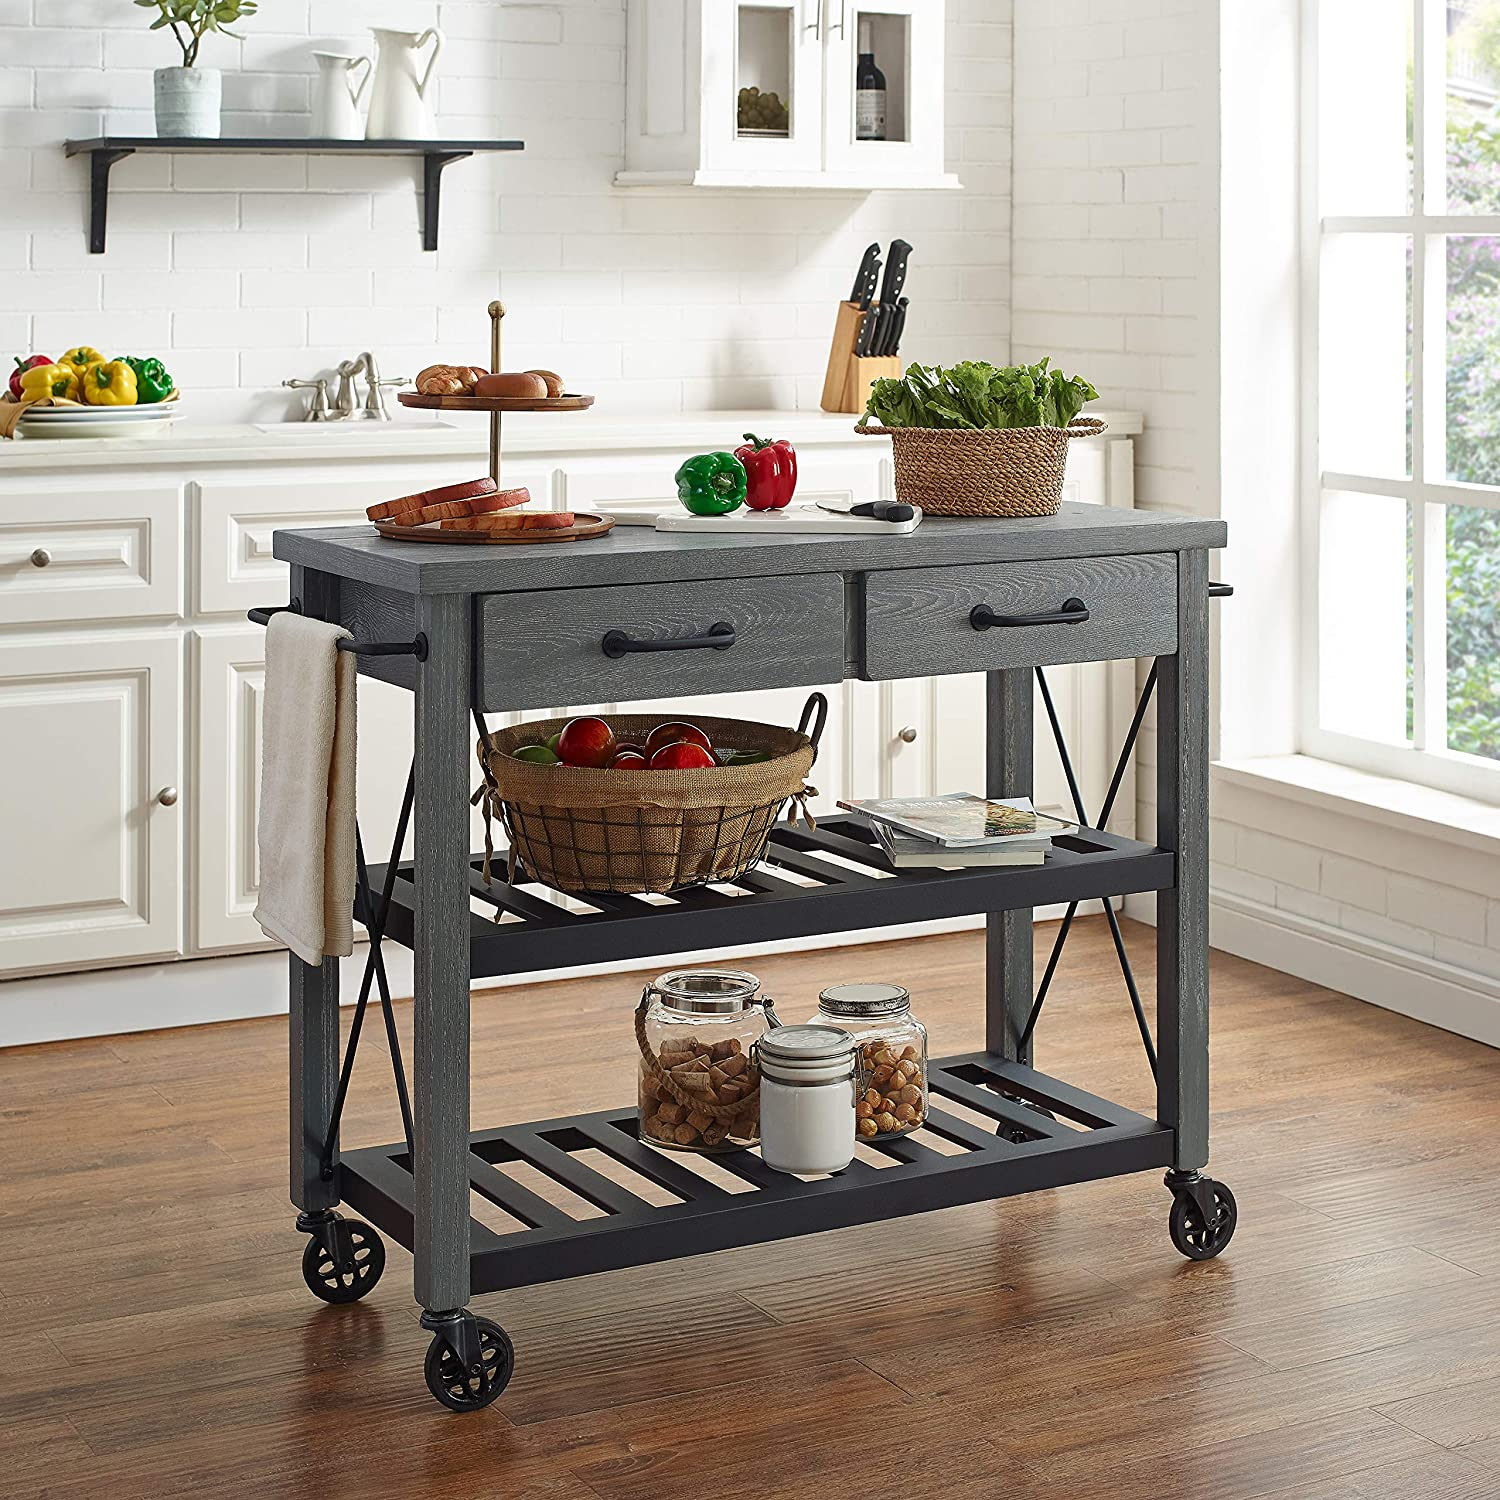 Kitchen Dining Room Furniture Grey Crosley Furniture Cf3008 Gy Roots Rack Industrial Rolling Kitchen Cart Kitchen Islands Carts